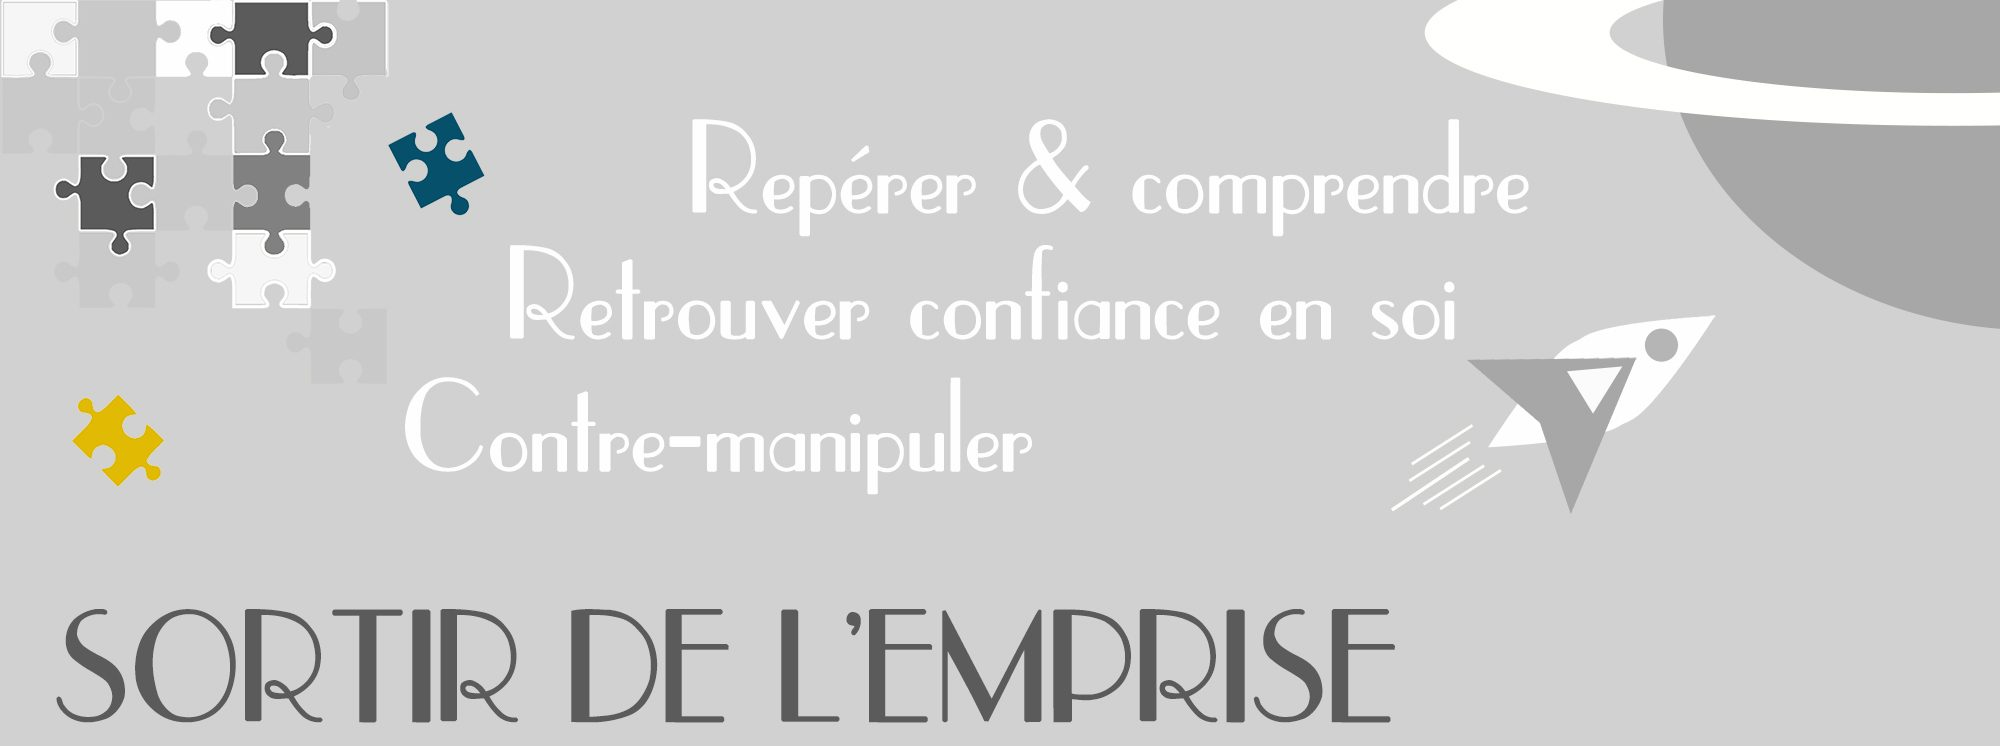 manipulation-sortir-emprise-ateliers-formations